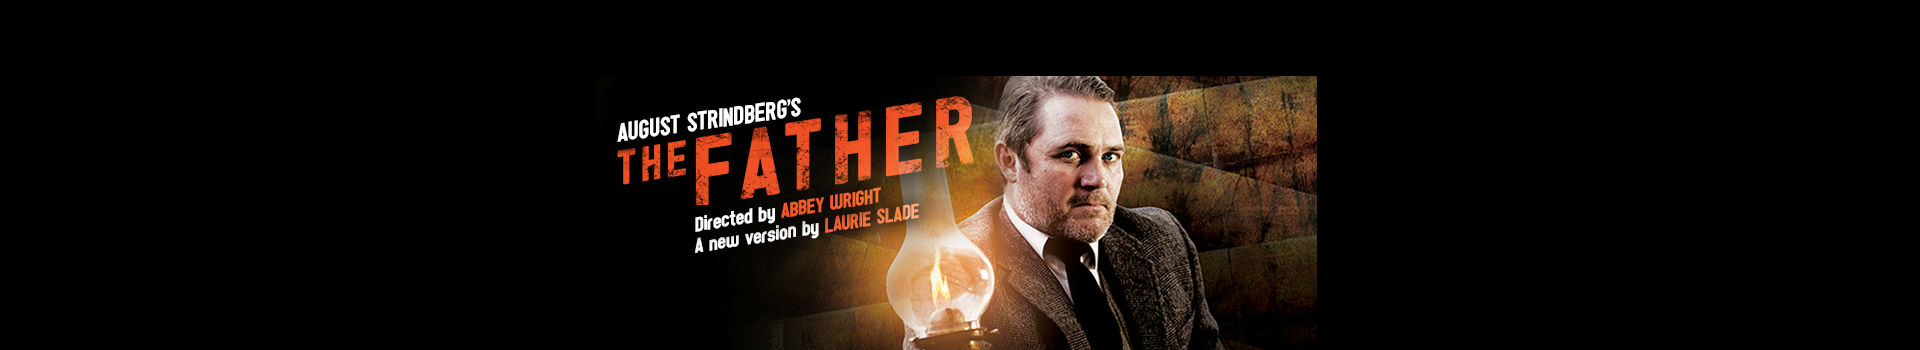 The Father at Trafalgar Studios